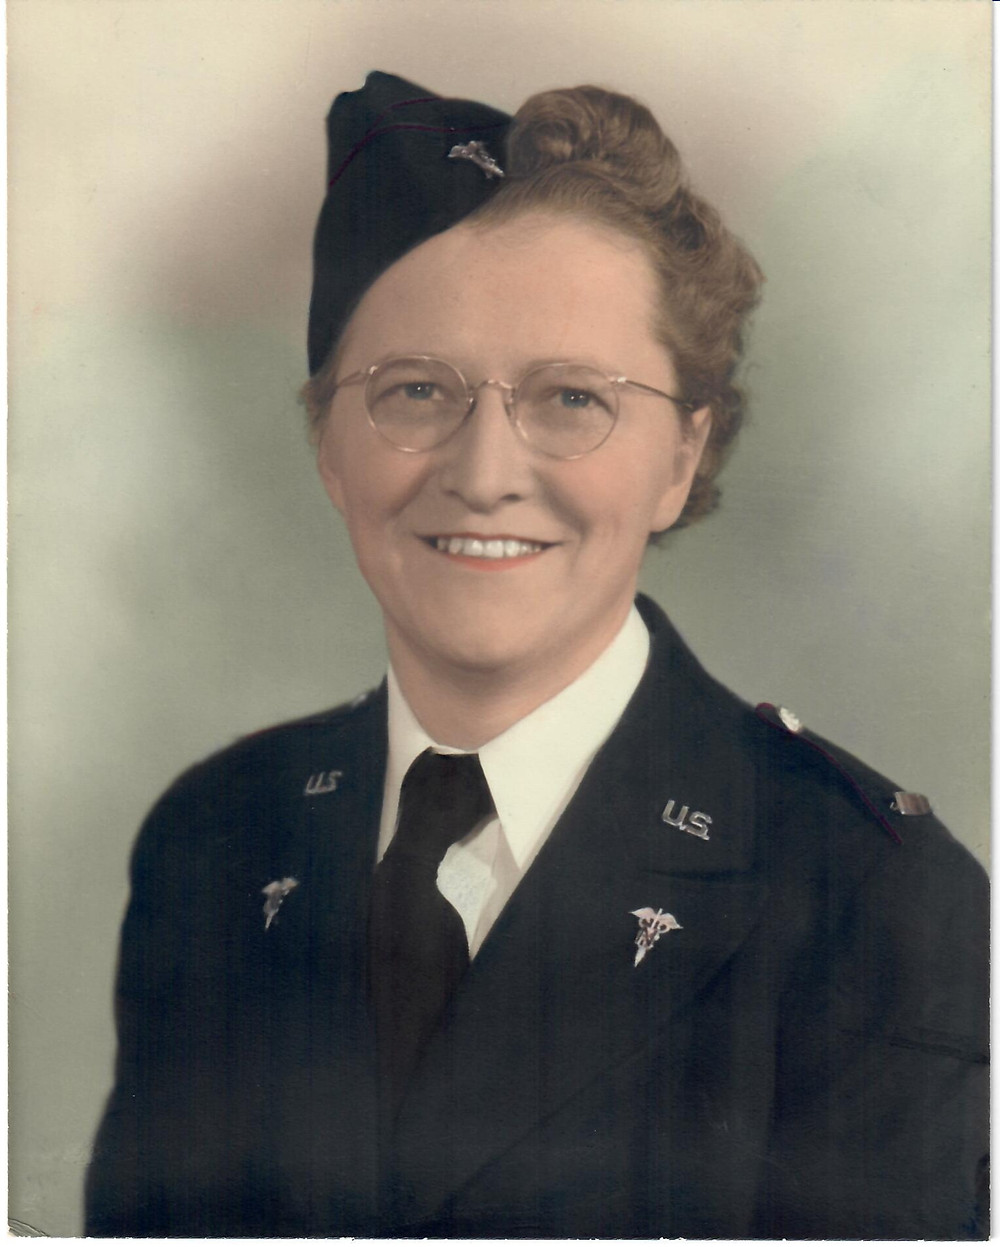 Colorized photo of a WWII 1st Lieutenant Nurse in the U.S. Navy wearing her dress uniform.